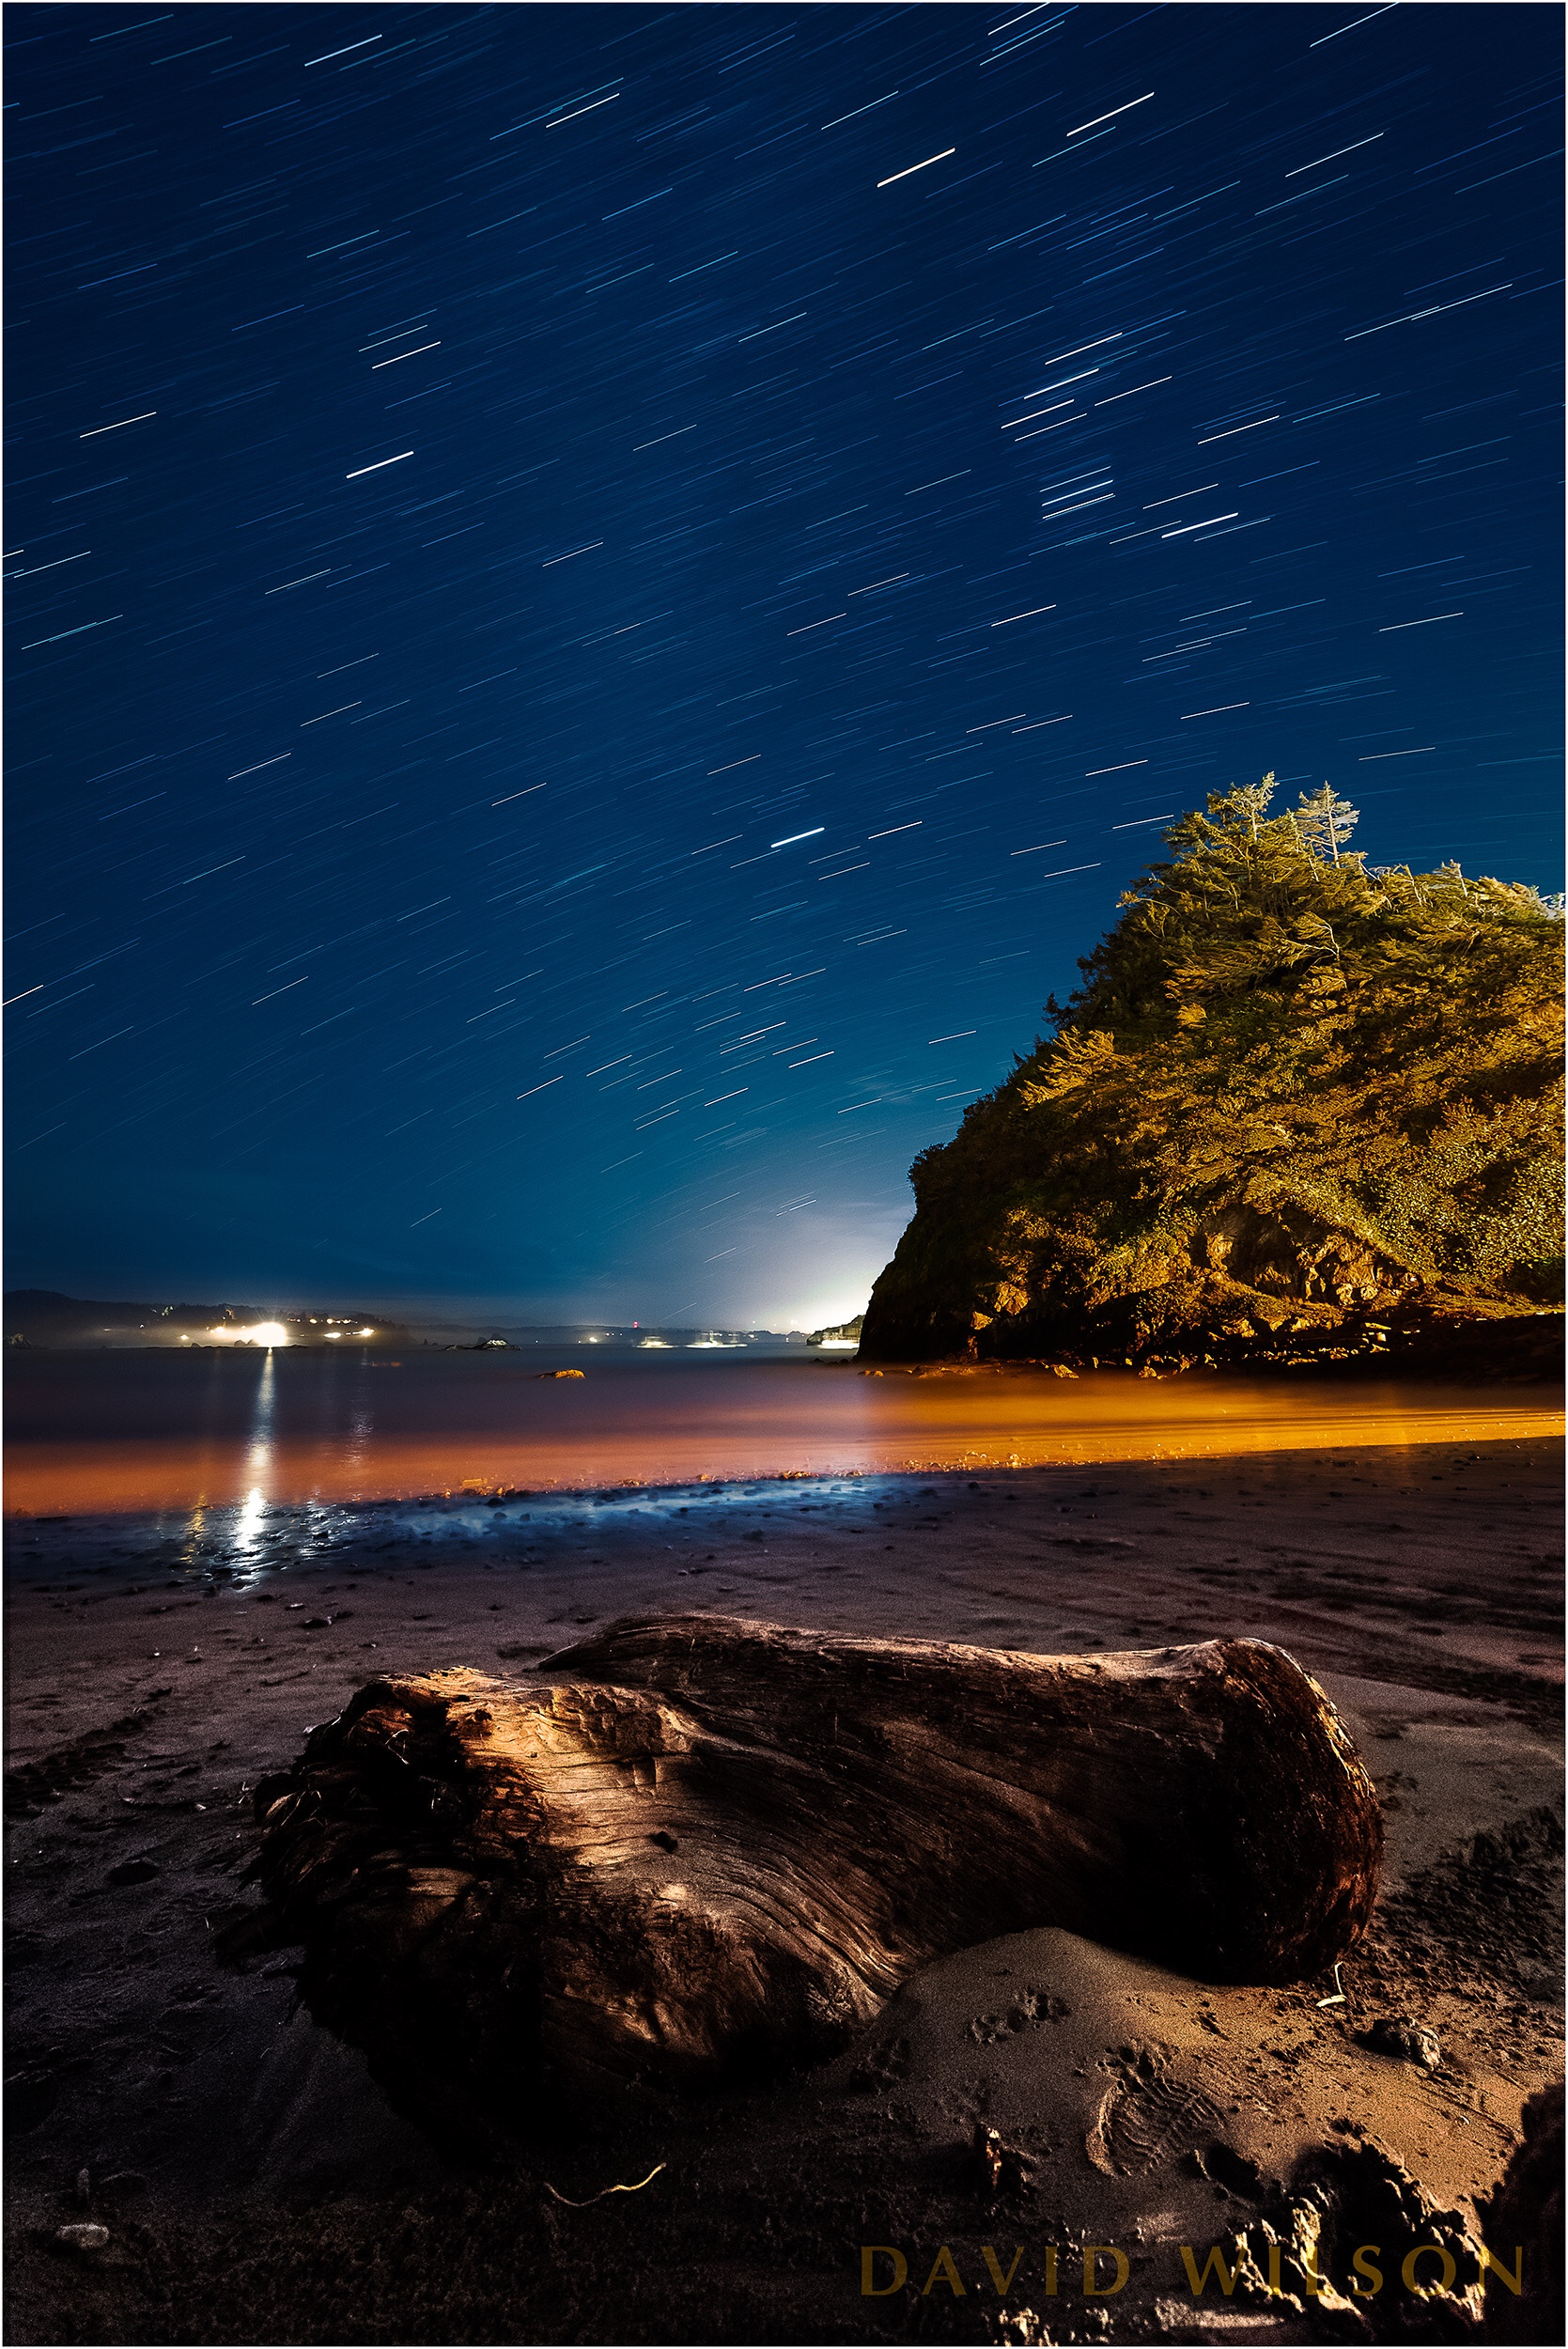 Star trails above Boat Launch Beach, Trinidad, California.